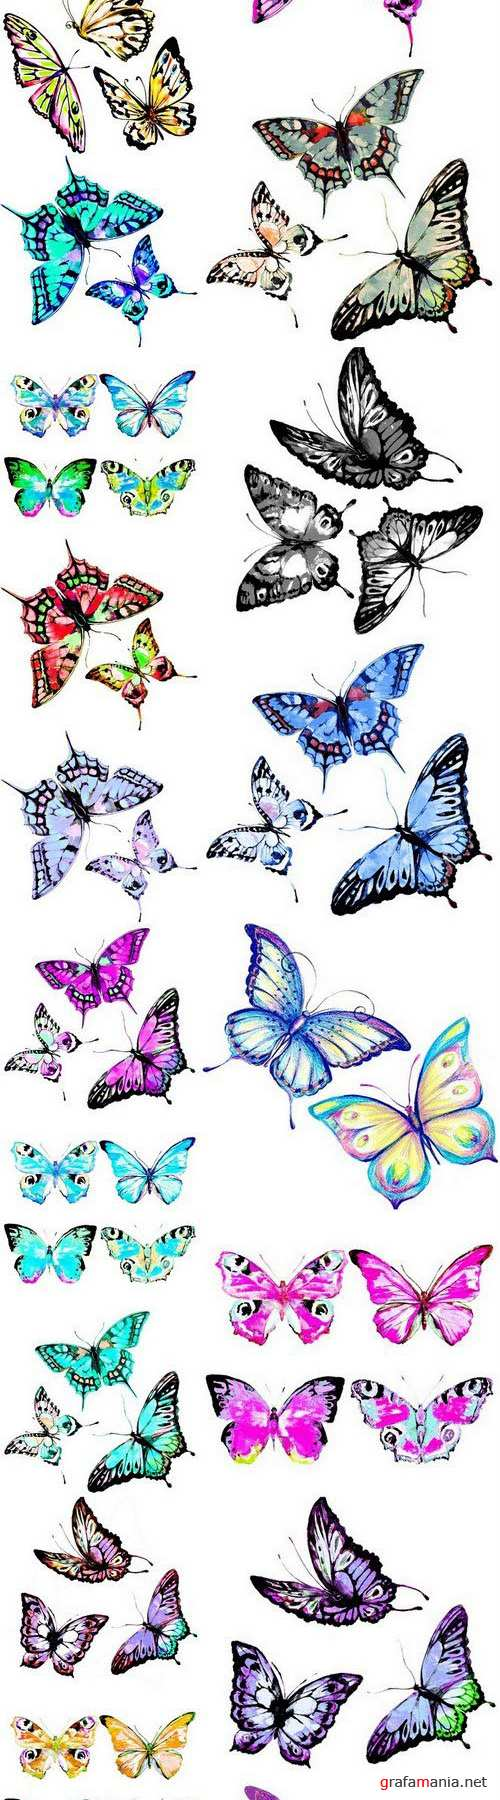 Beautiful watercolor butterflies - 20xUHQ JPEG